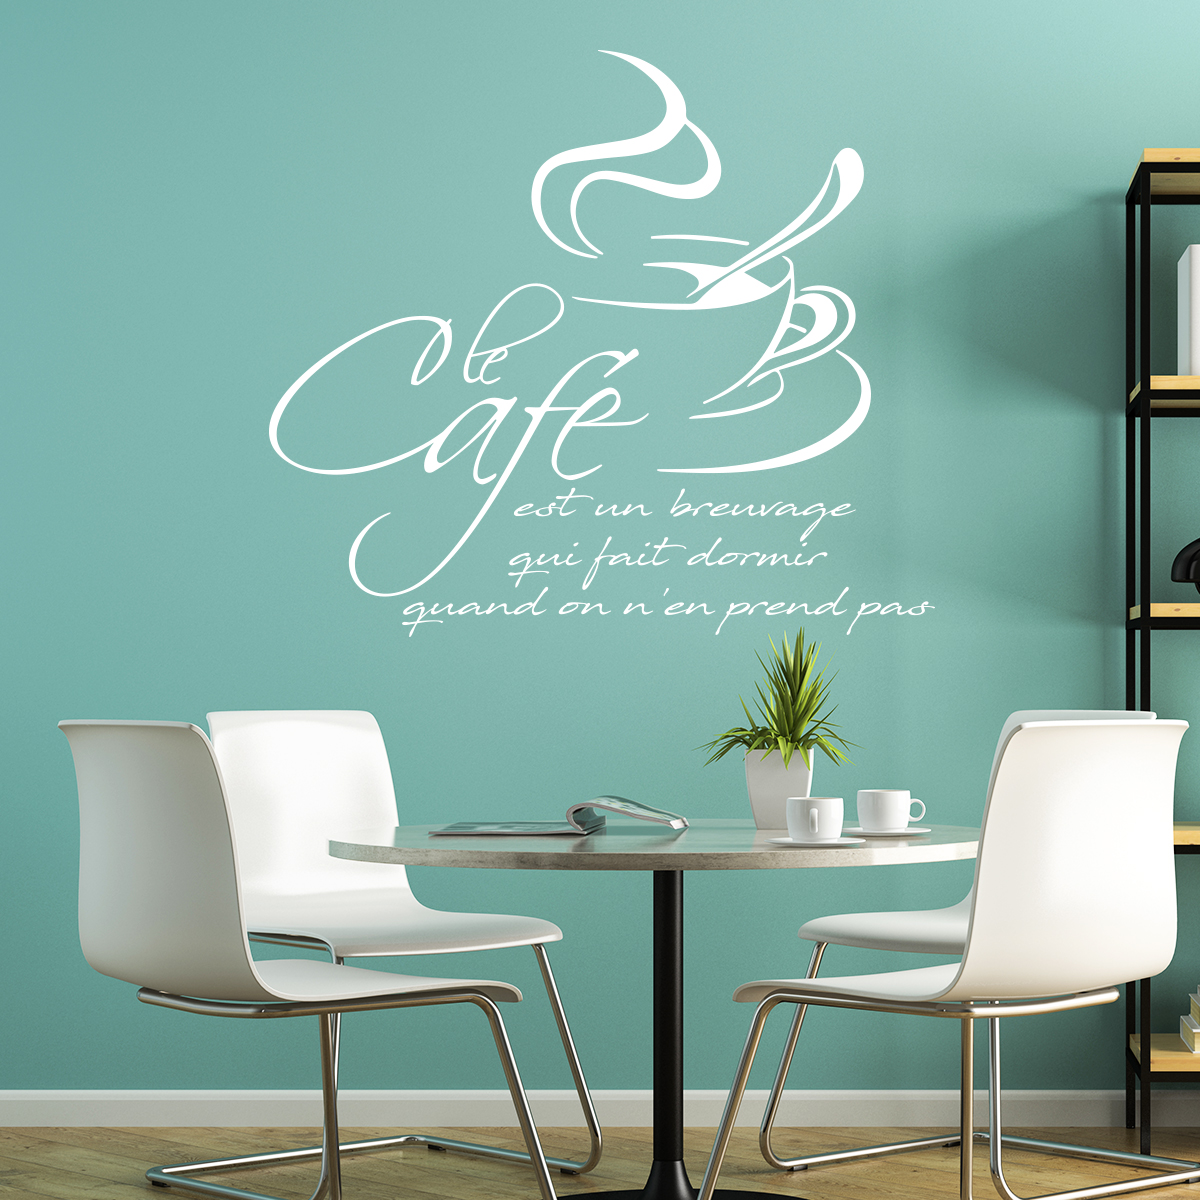 sticker citation cuisine le caf est un breuvage qui fait dormir stickers citations fran ais. Black Bedroom Furniture Sets. Home Design Ideas